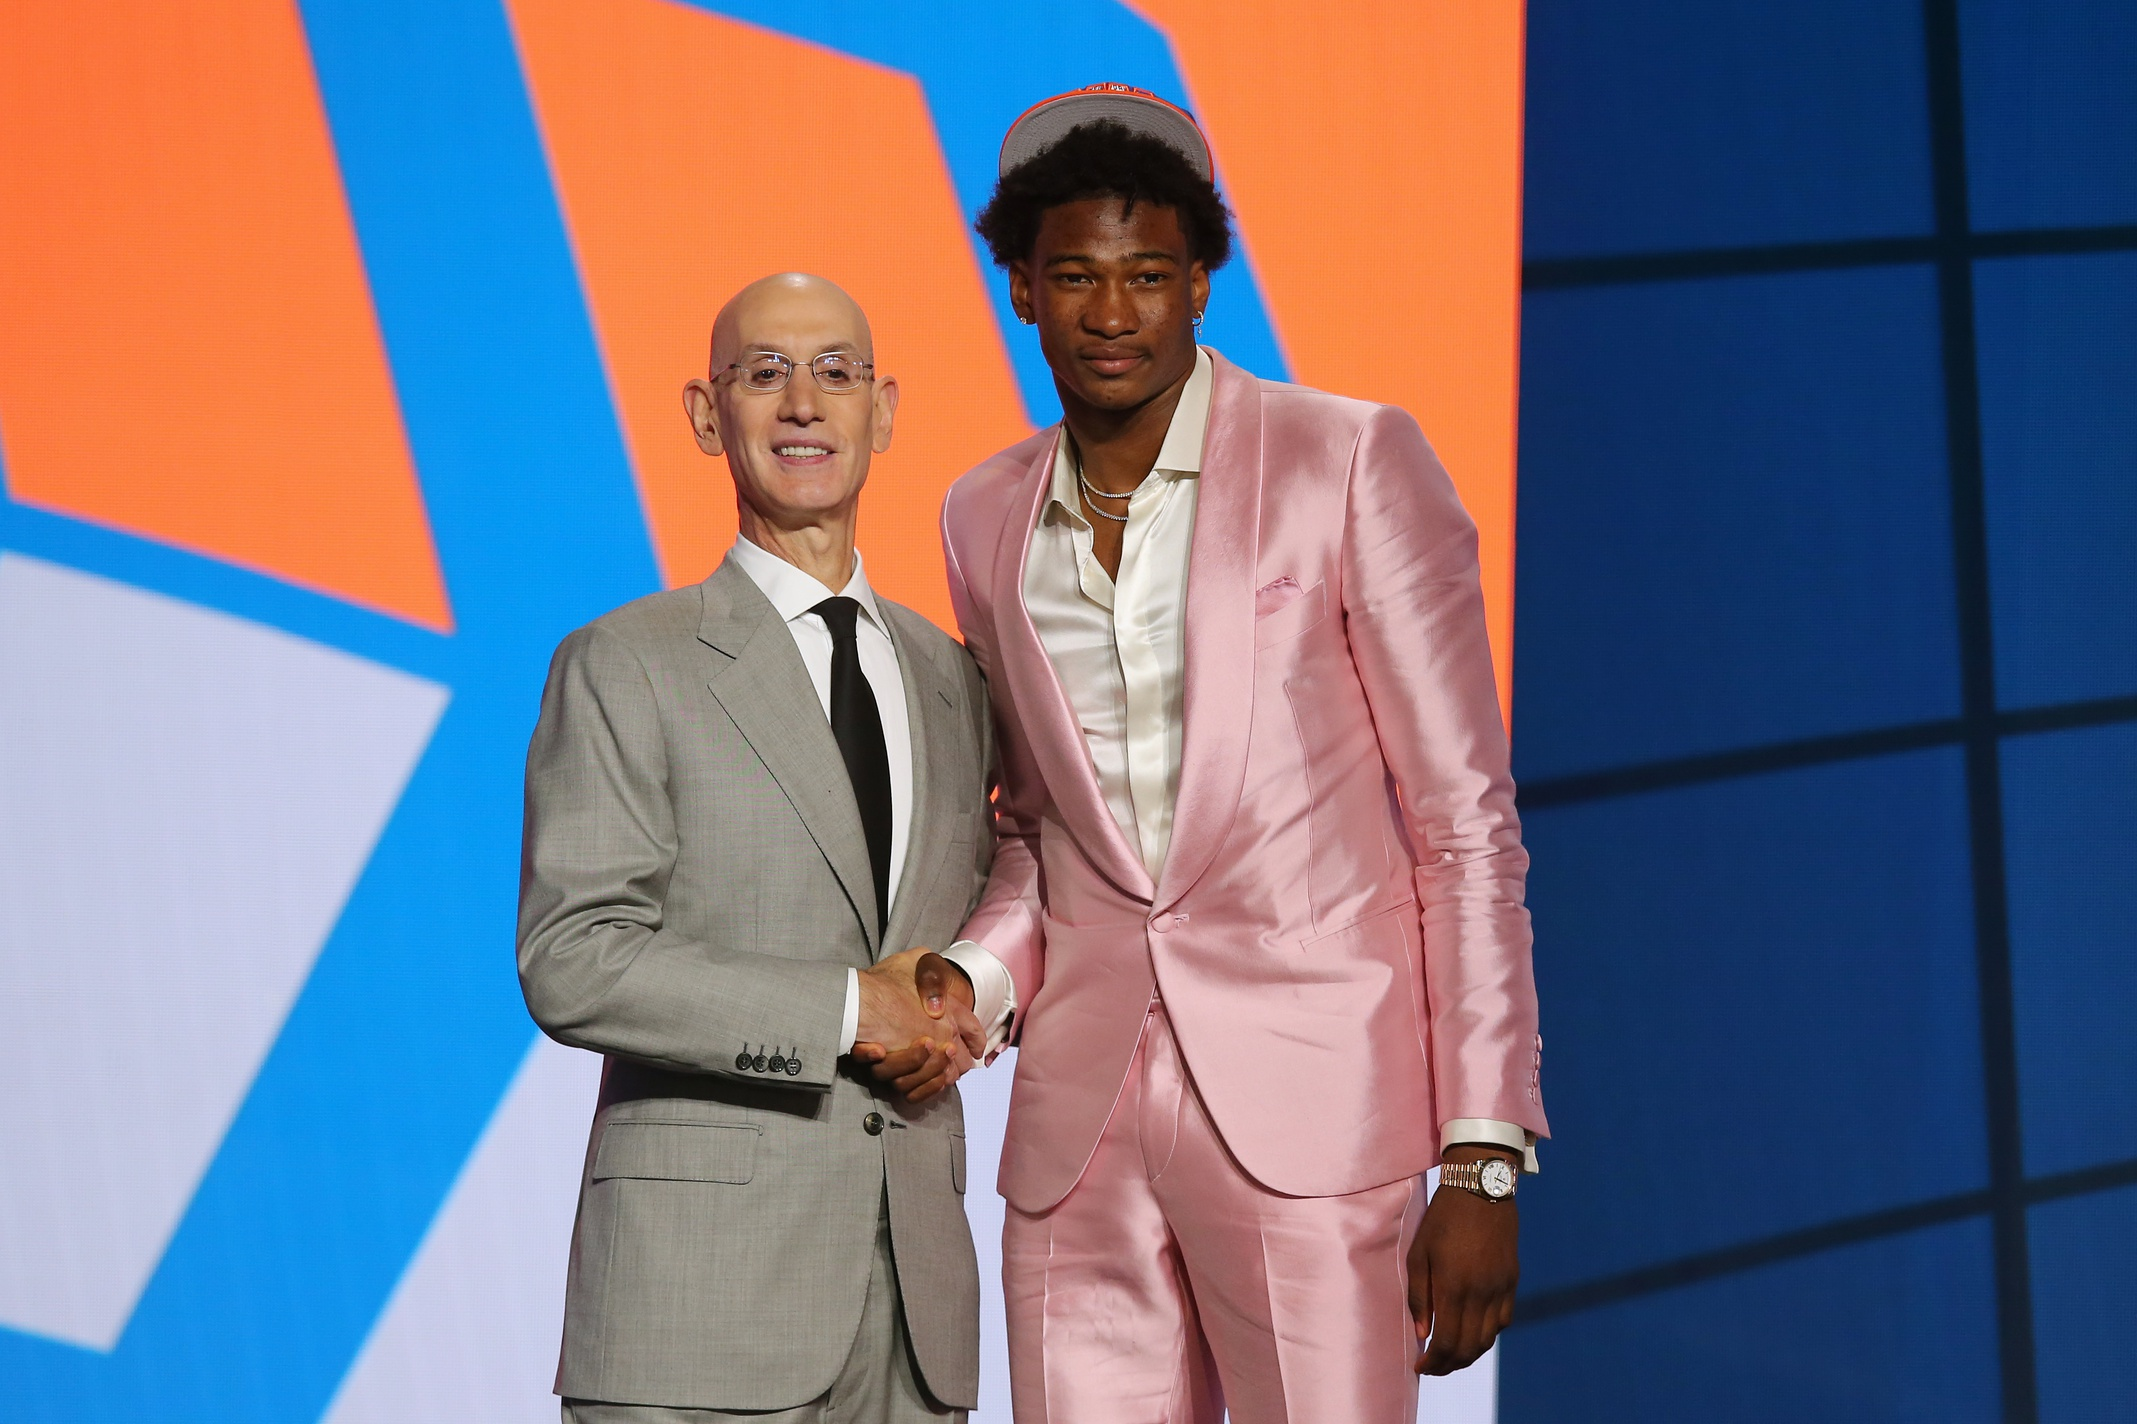 Reports: Hornets acquire No. 19 pick in trade with Knicks